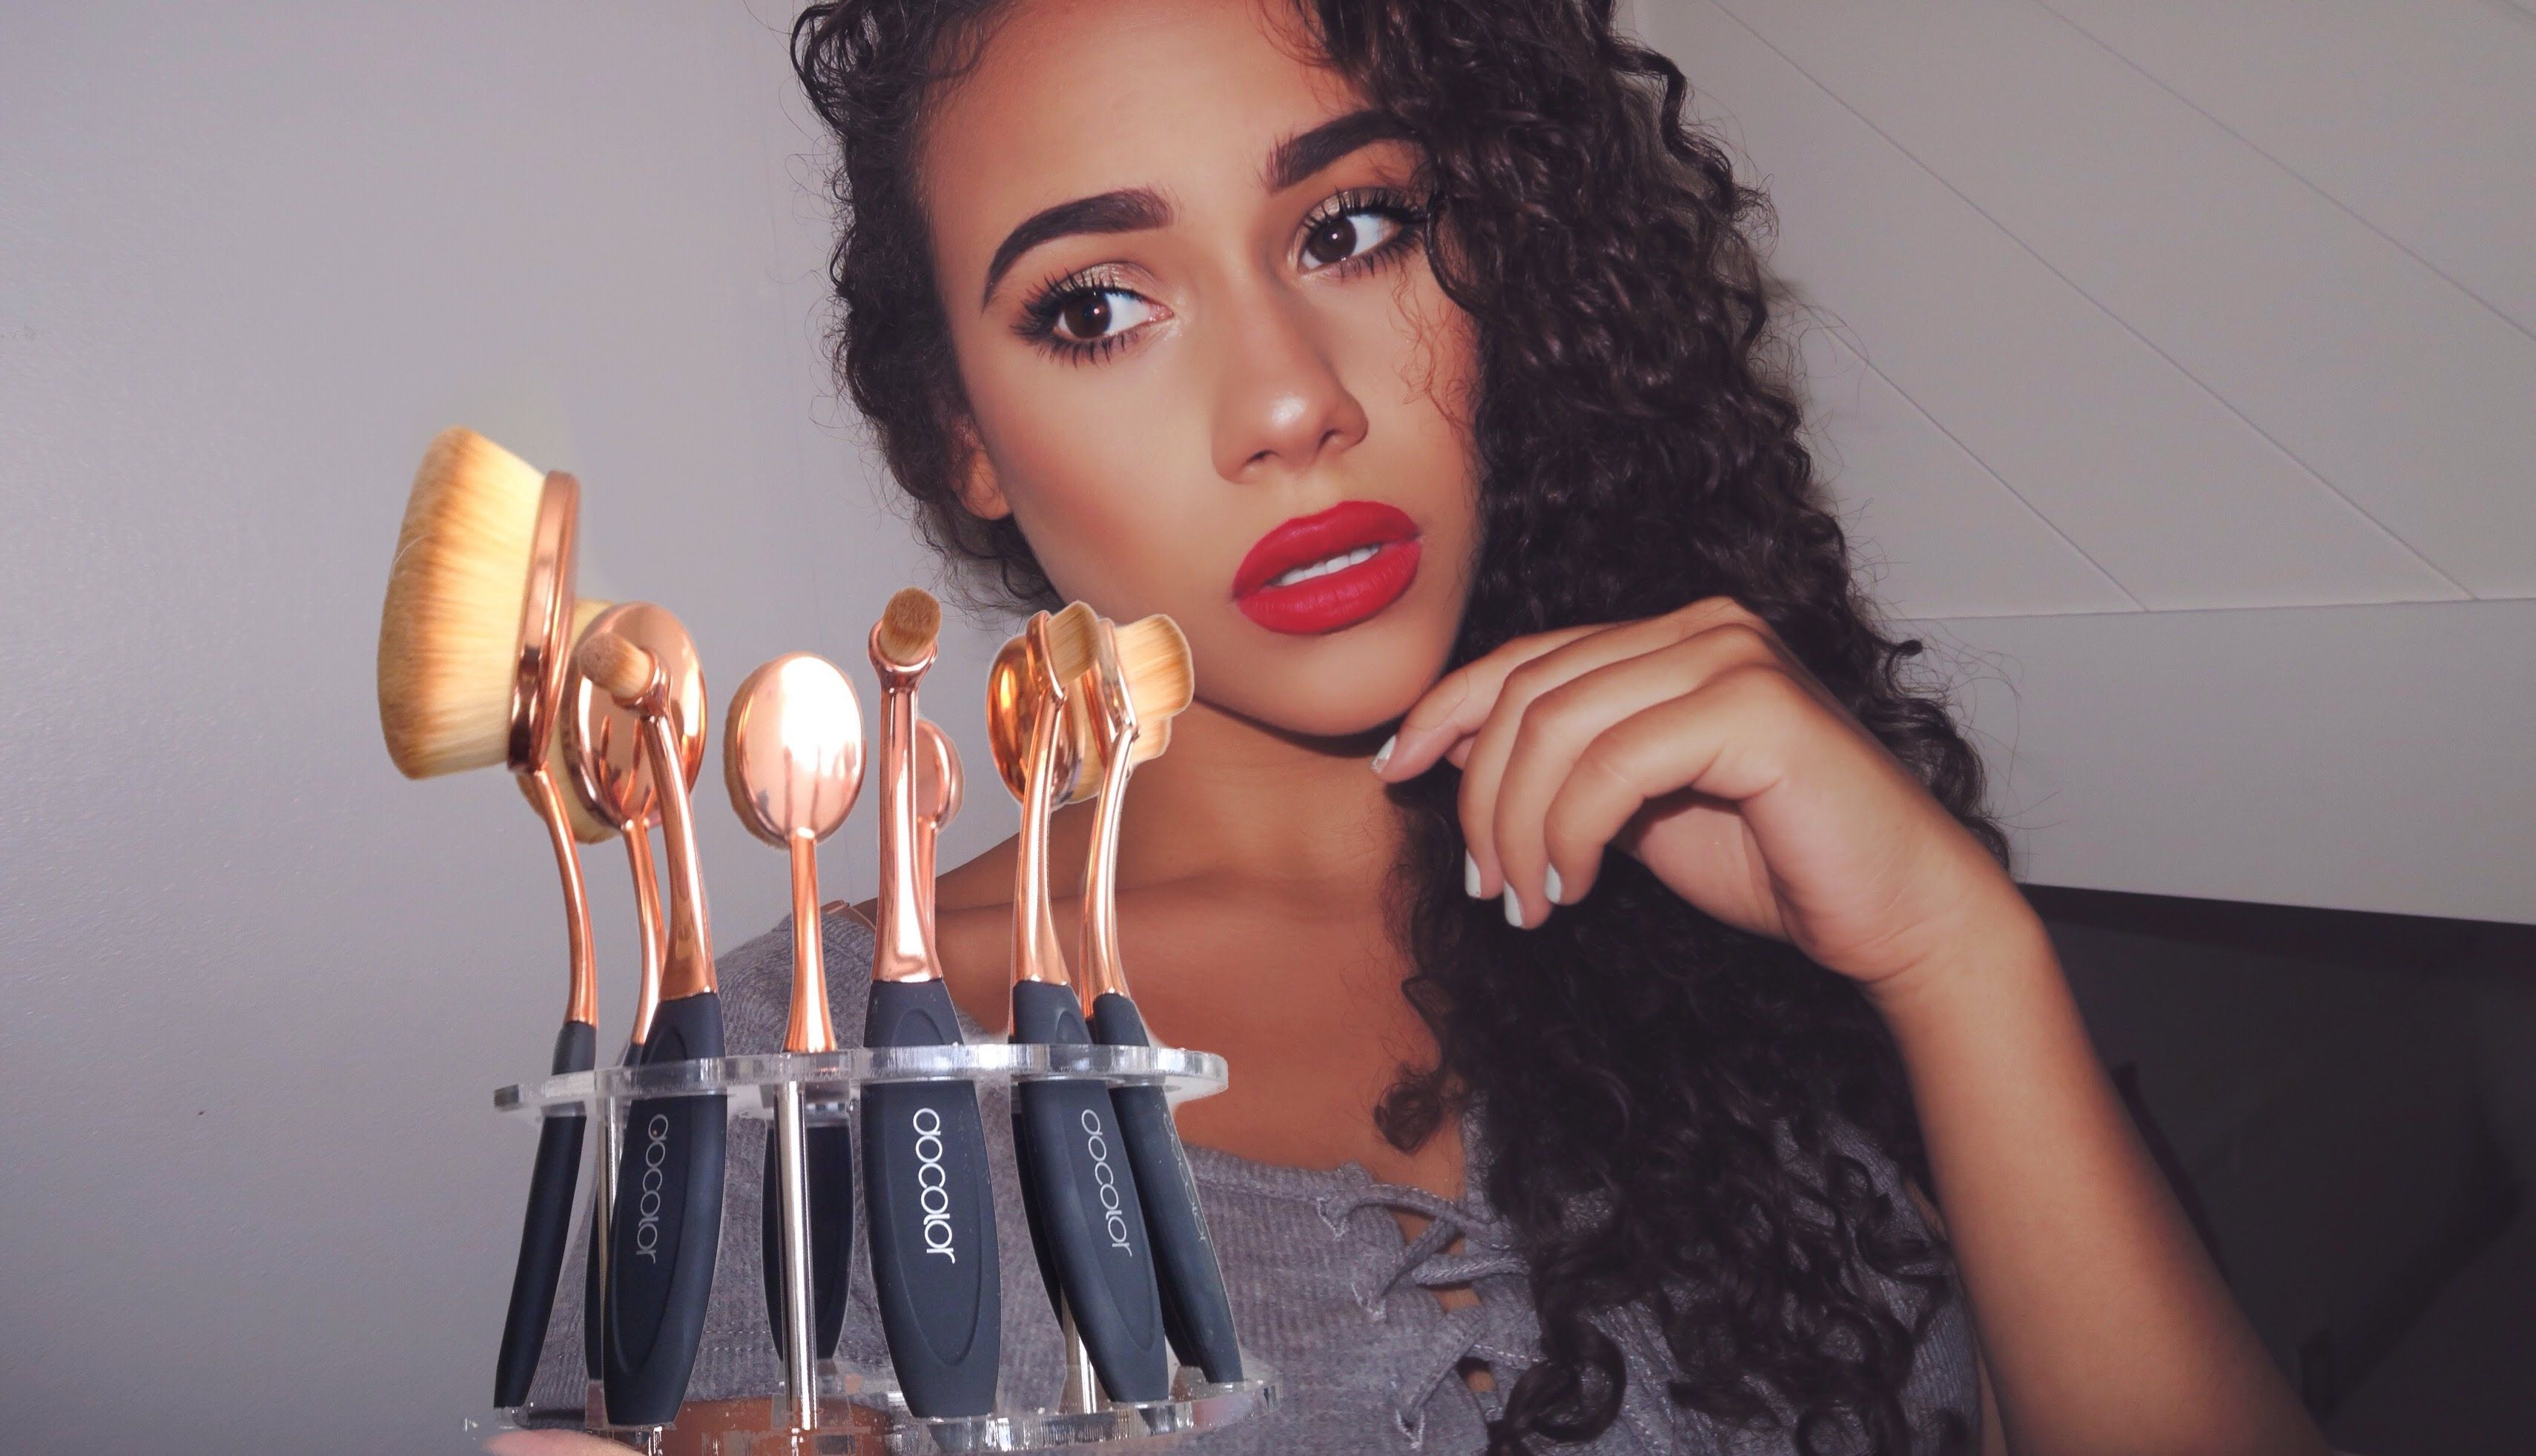 Docolor Artis Brush DUPE! Review+Demo http